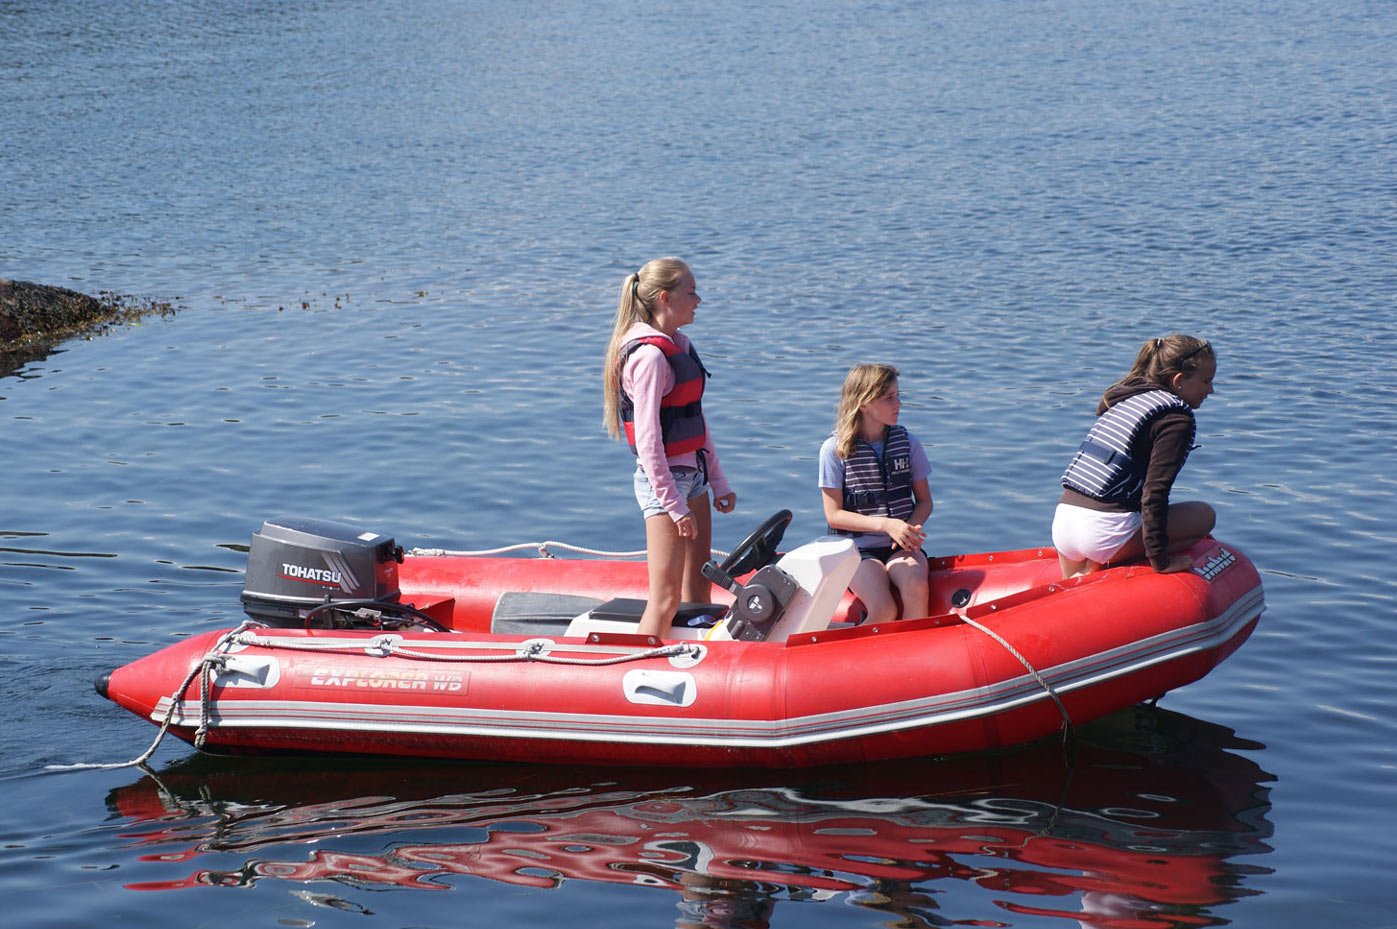 Trusting kids with boats